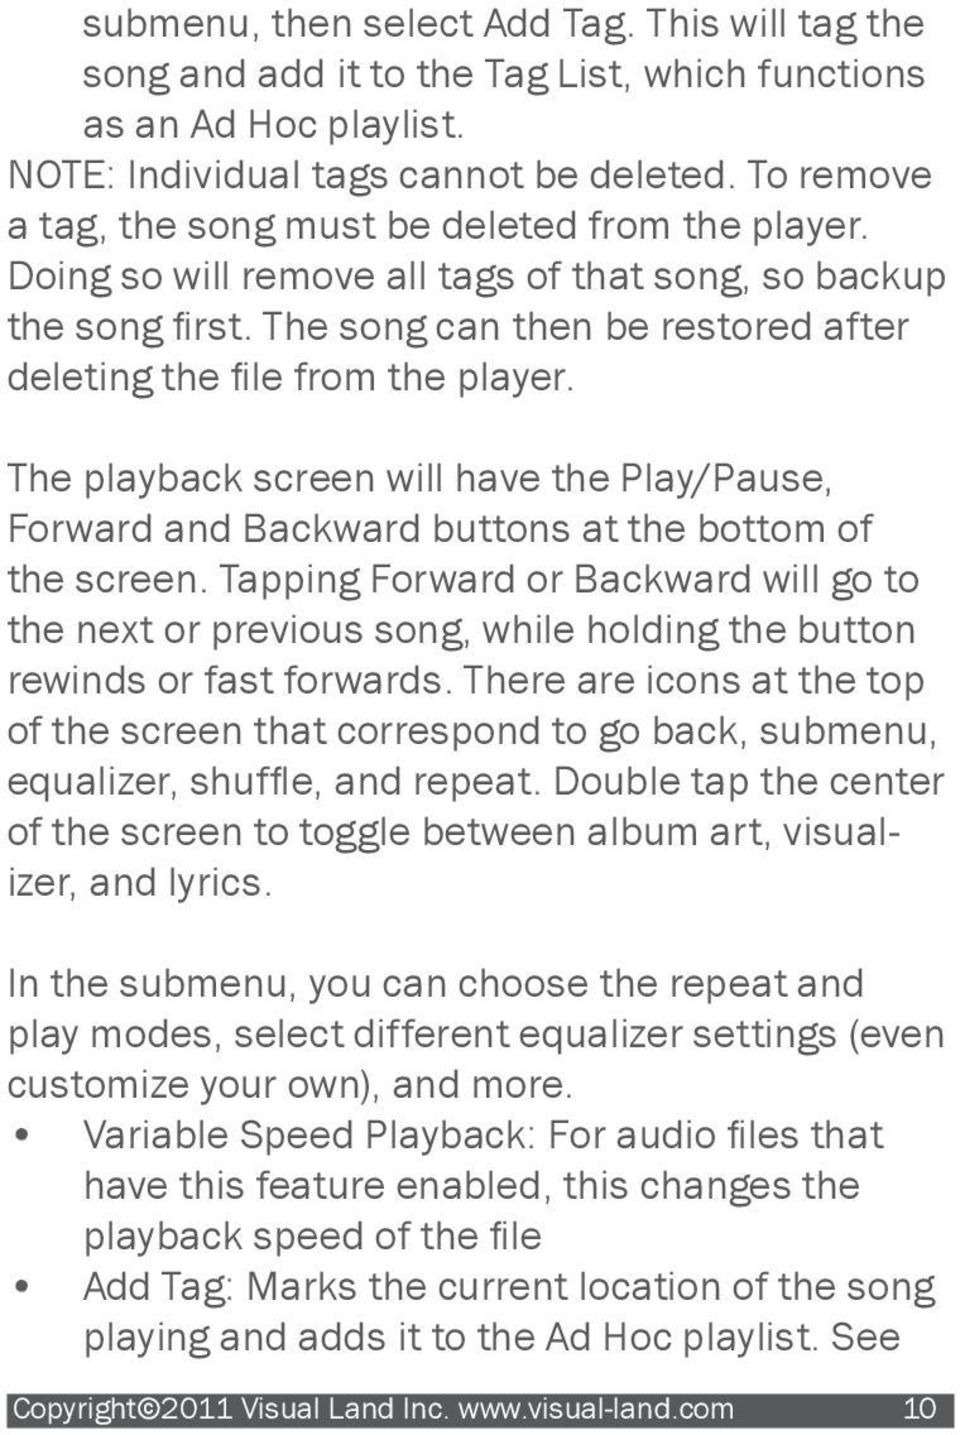 The playback screen will have the Play/Pause, Forward and Backward buttons at the bottom of the screen.